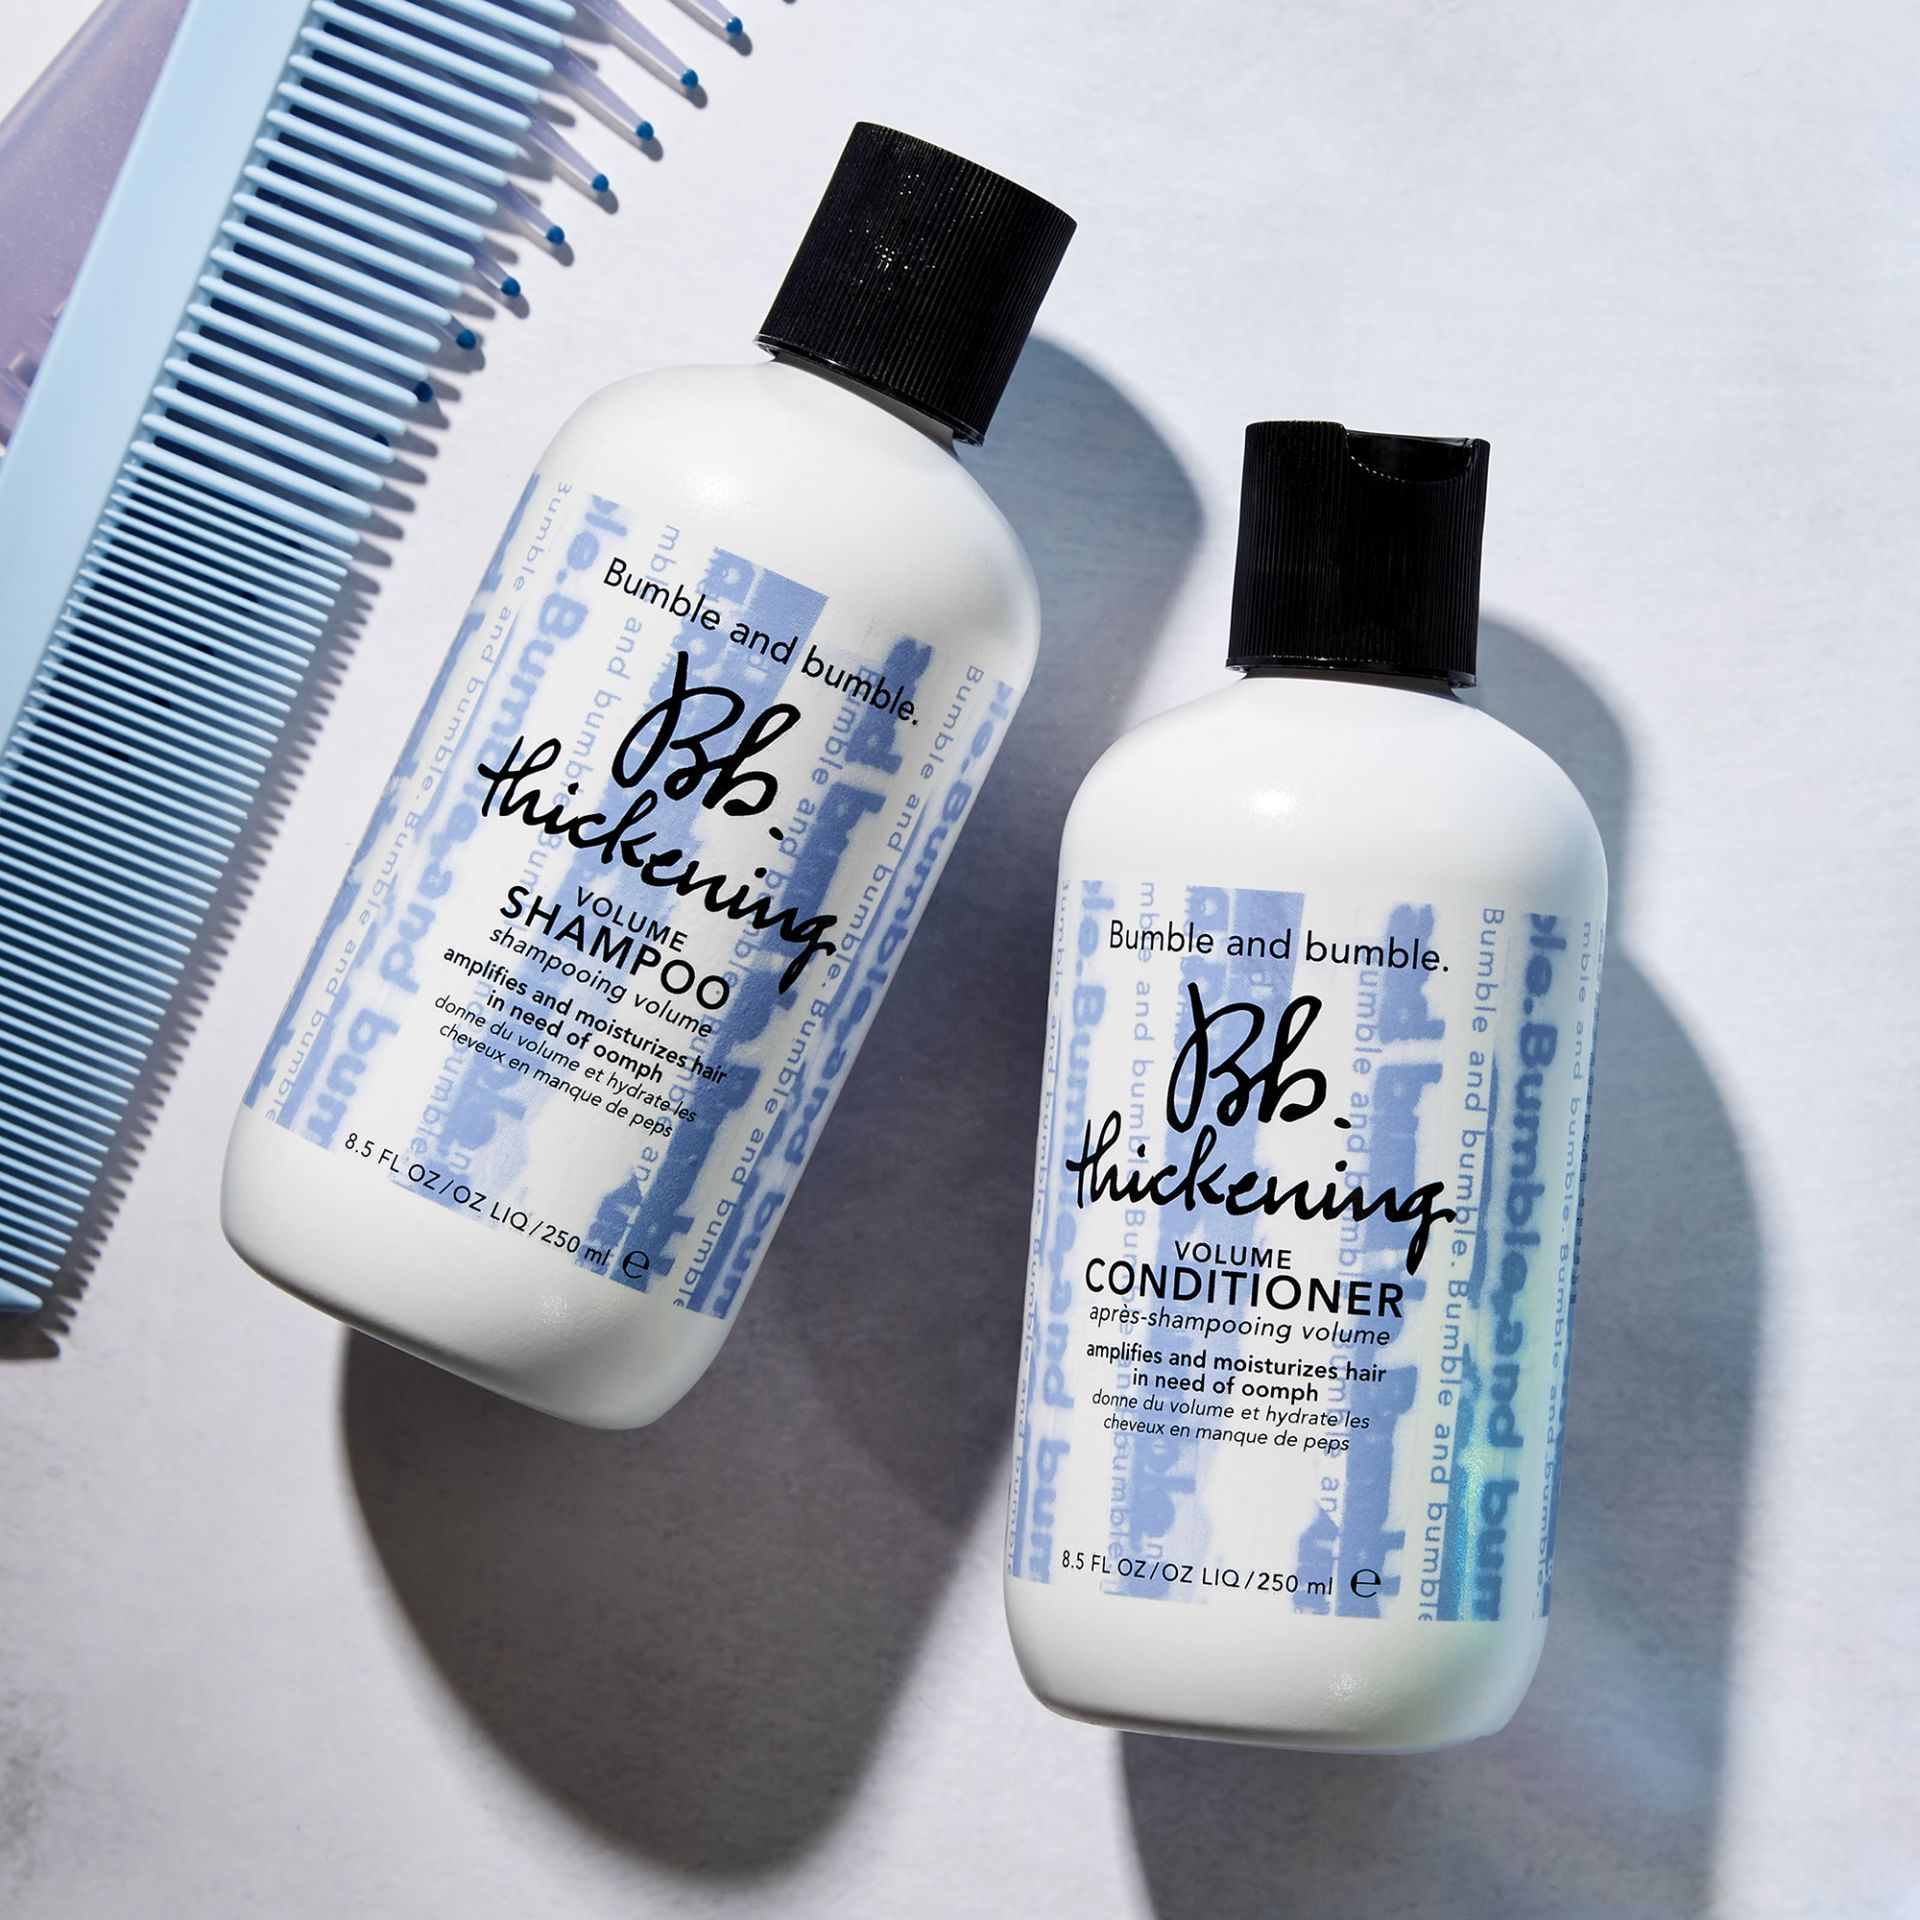 Bumble And Bumble Thickening Volume Shampoo Ulta Beauty Bumble And Bumble Shampoo And Conditioner Bumble And Bumble Thickening Shampoo Bumble And Bumble Thickening